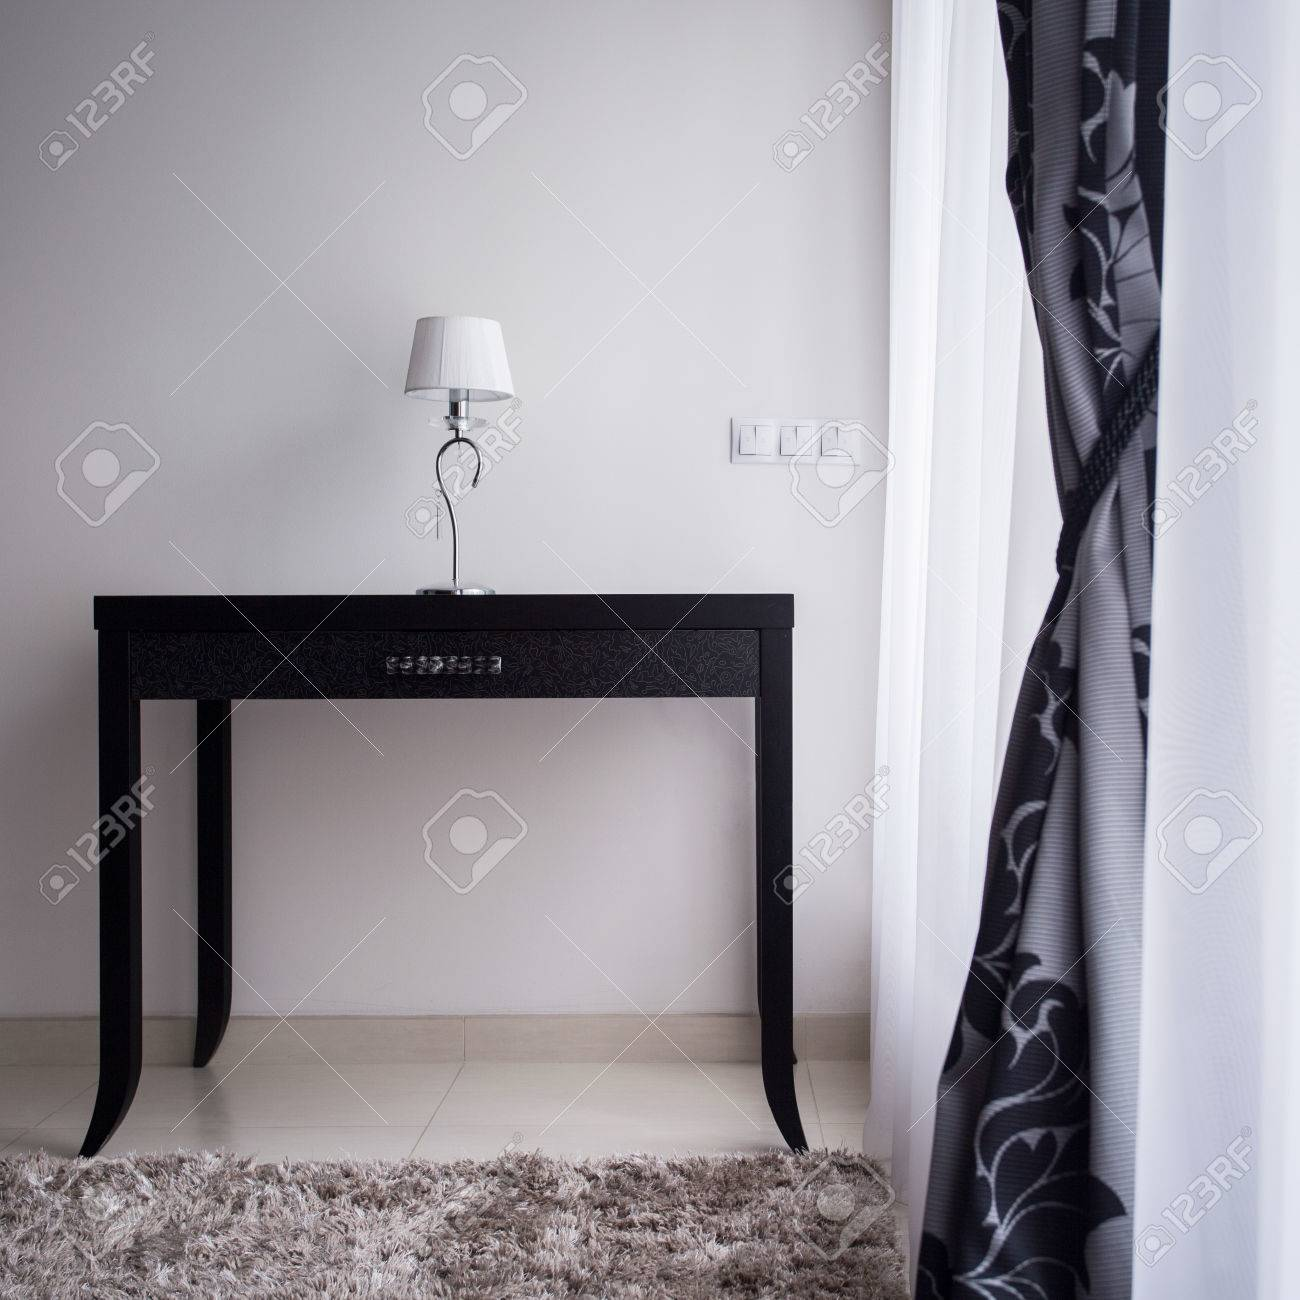 photo of a small lamp standing on wooden decorative table stock photo picture and royalty free image image 44312146